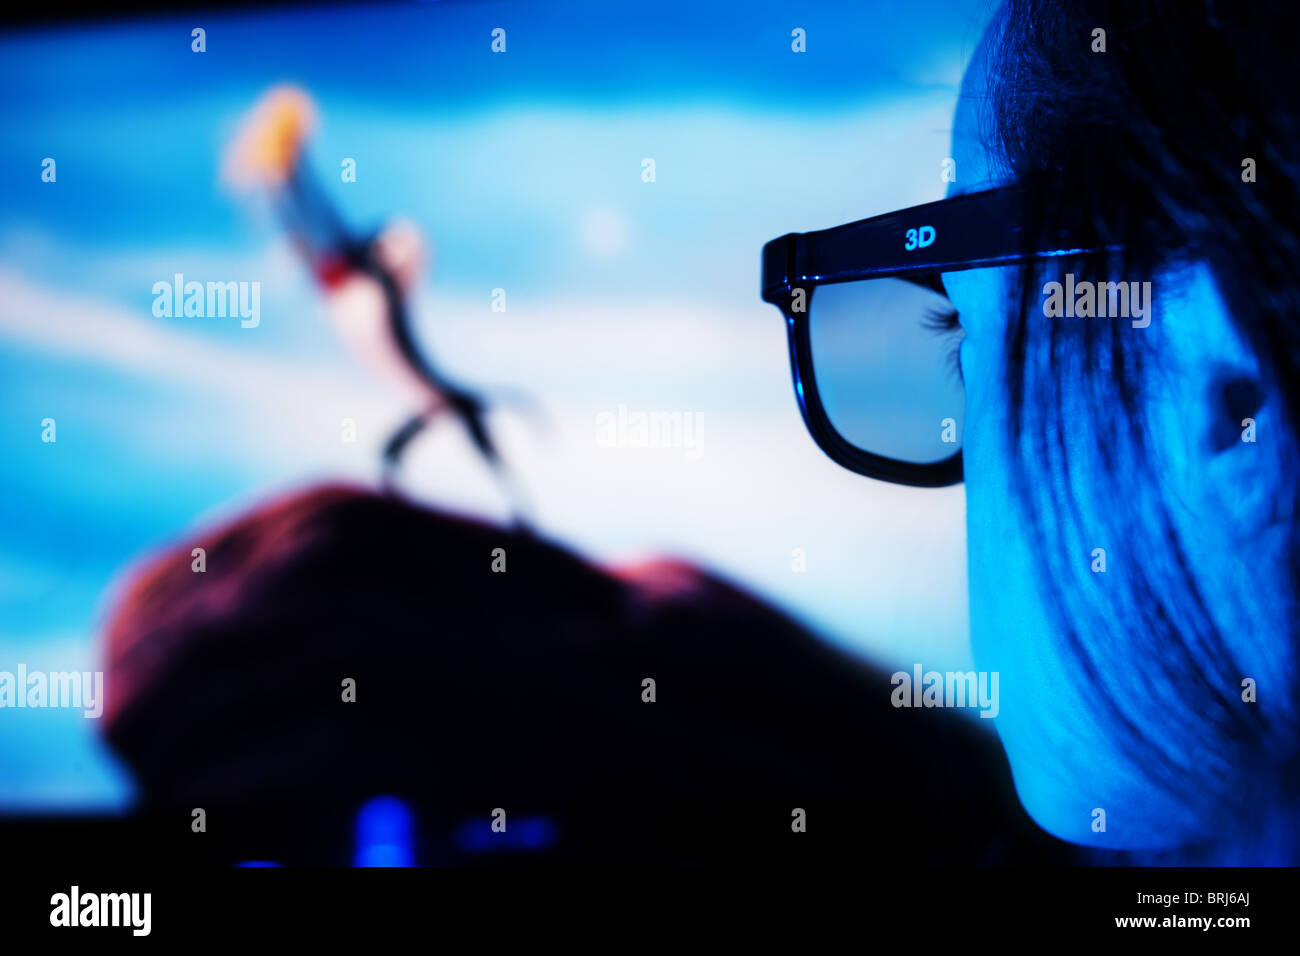 3D Entertainment - Stock Image